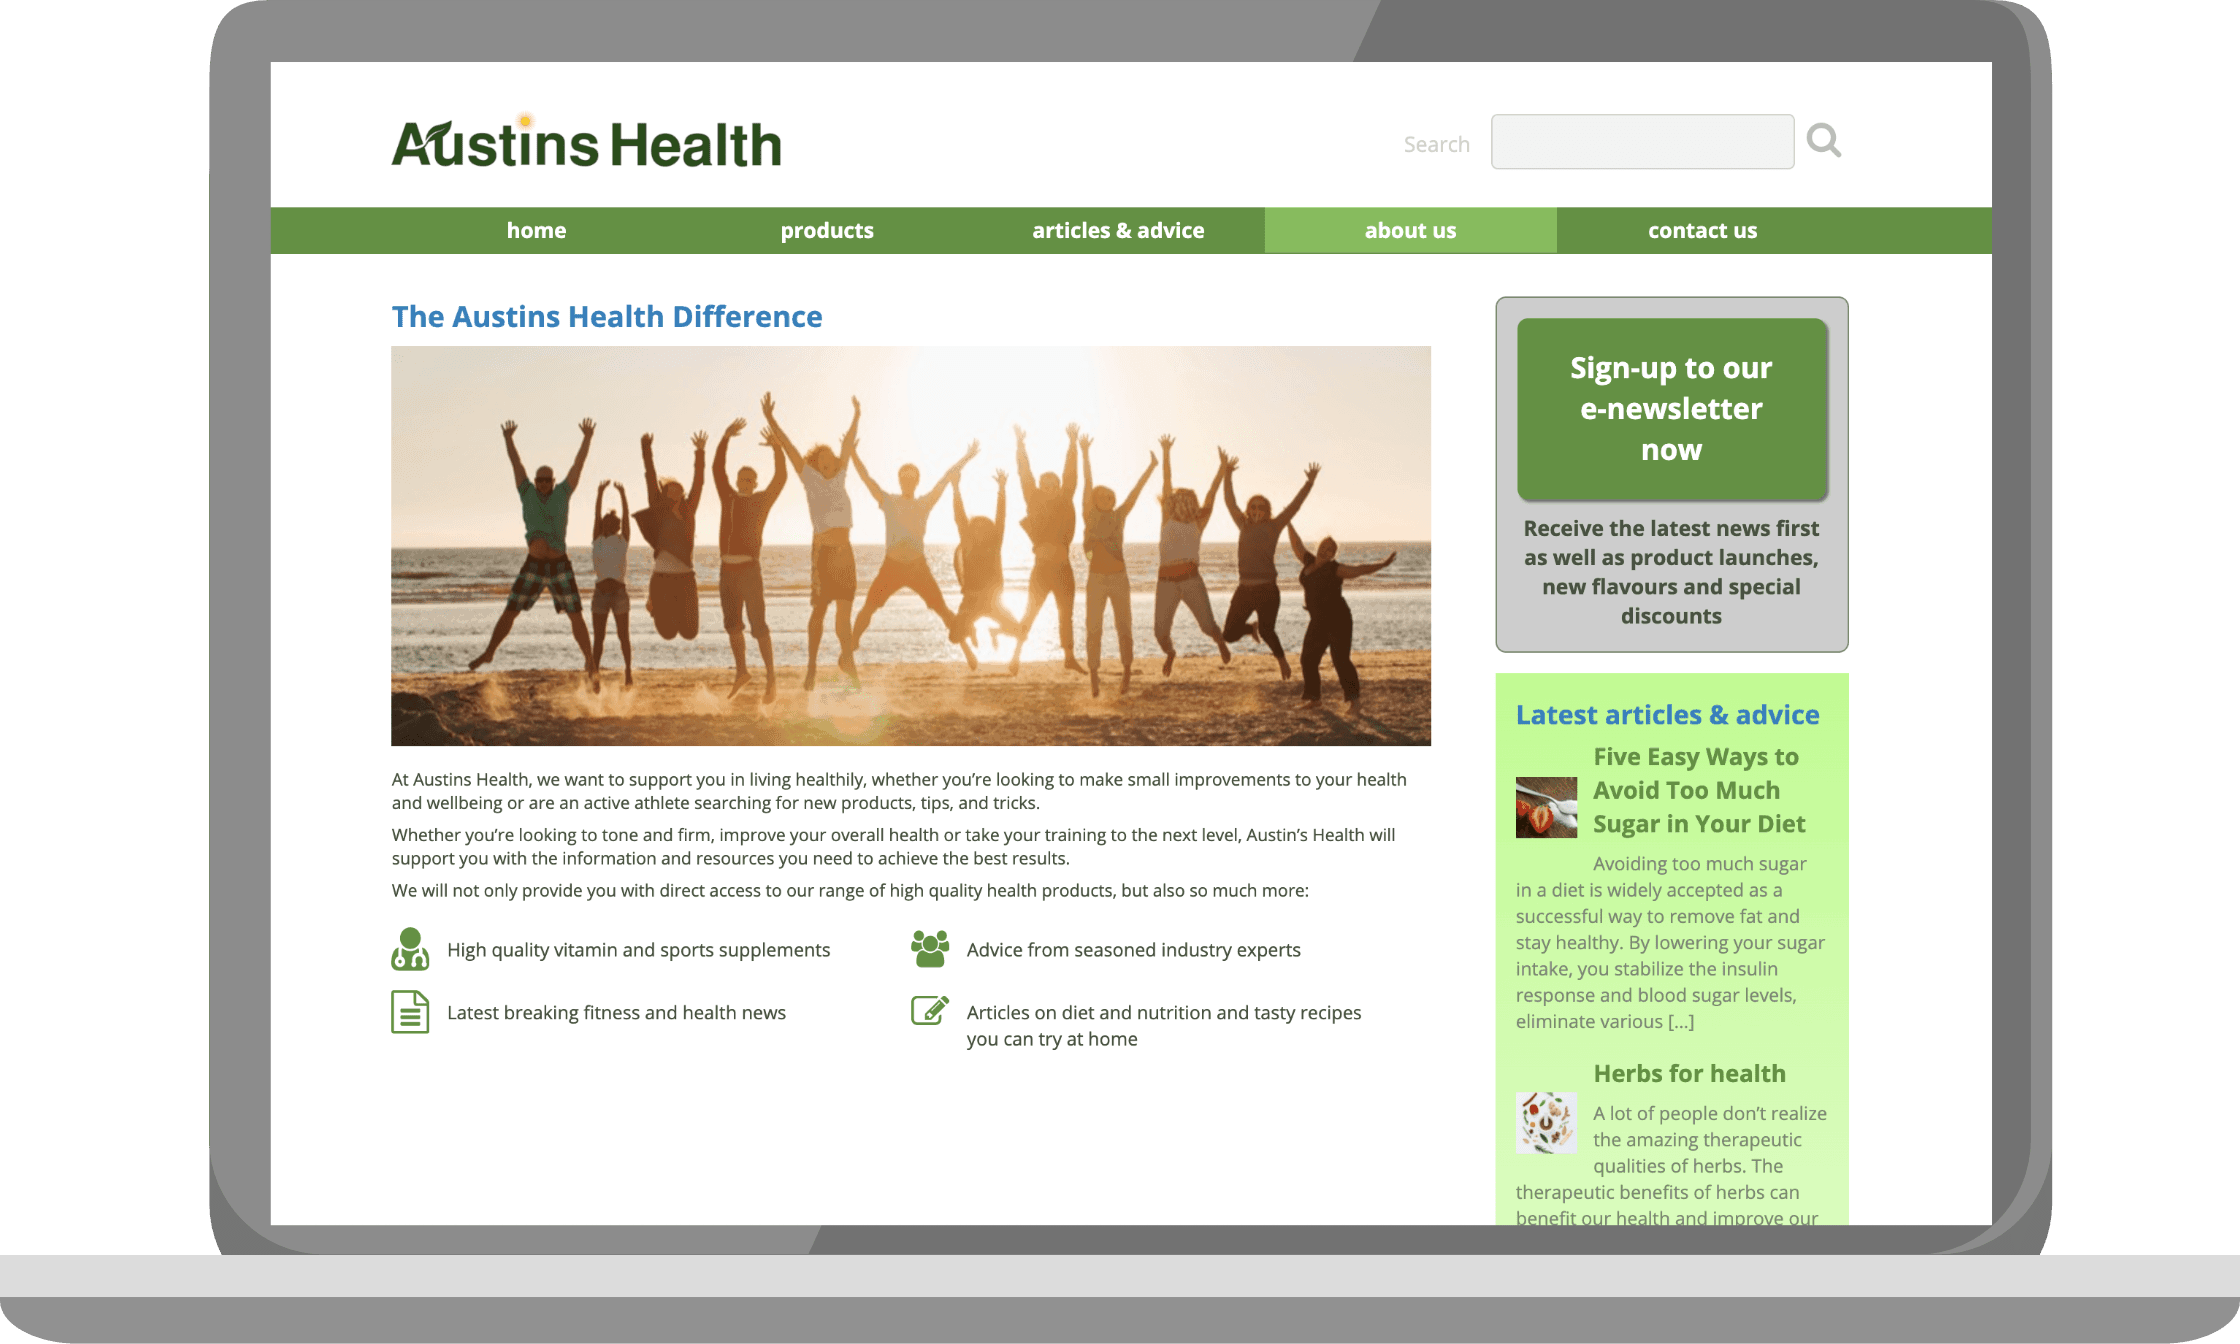 Austins Health About us page on a laptop